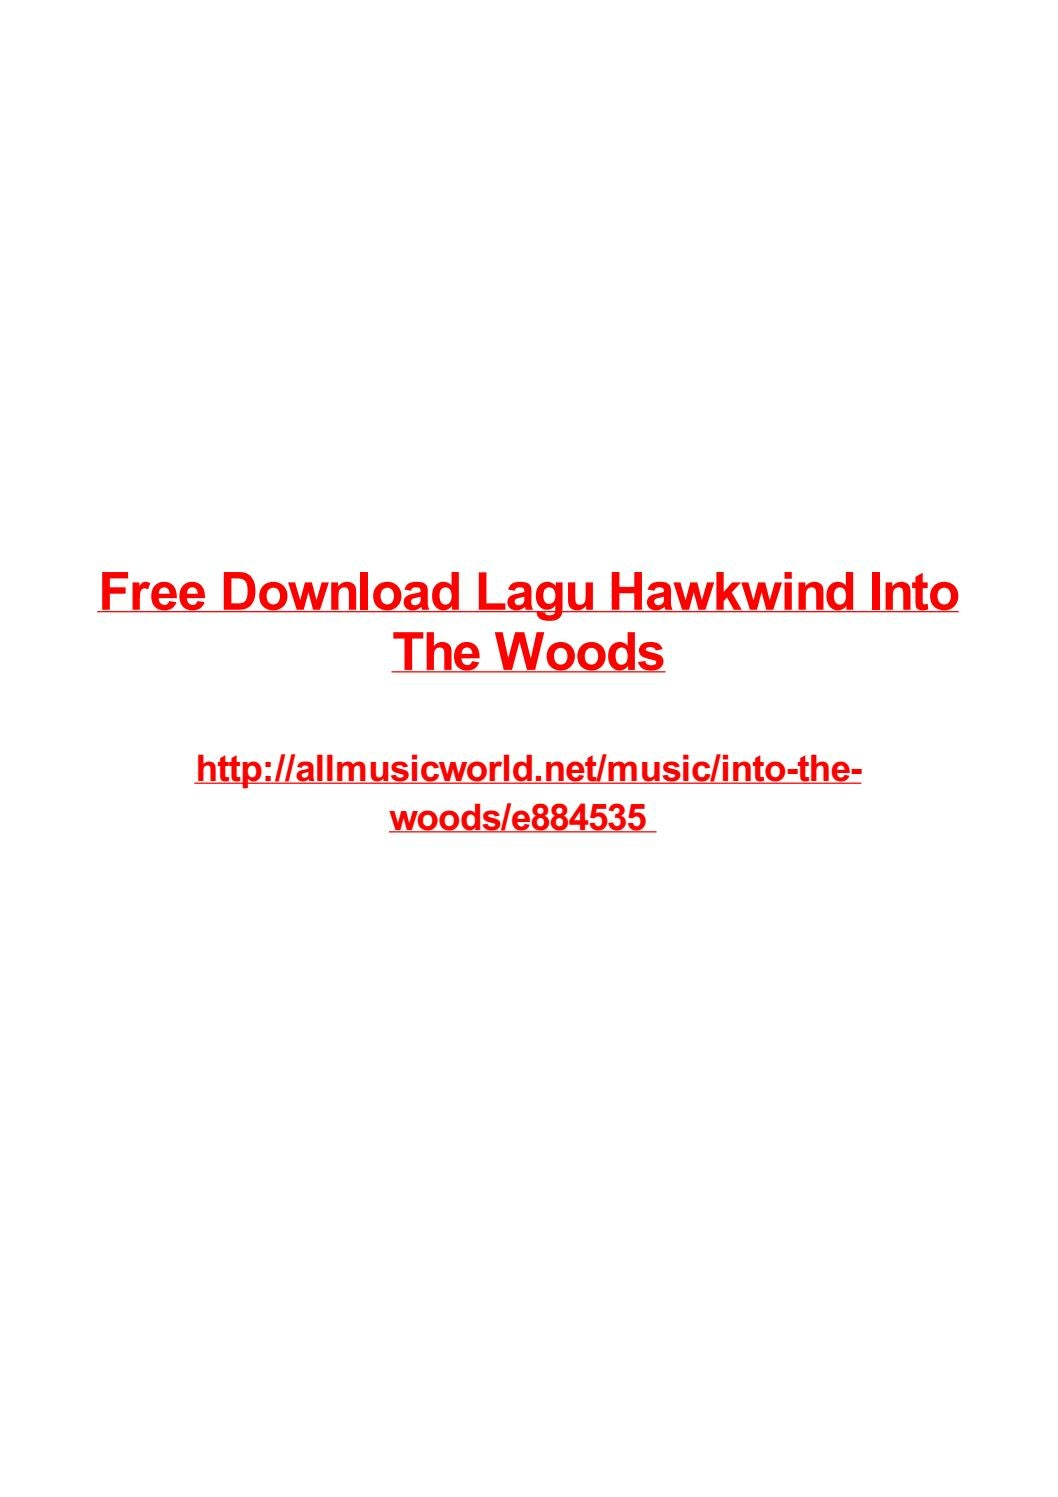 Free Download Lagu Hawkwind Into The Woods By Frank Seamons Issuu